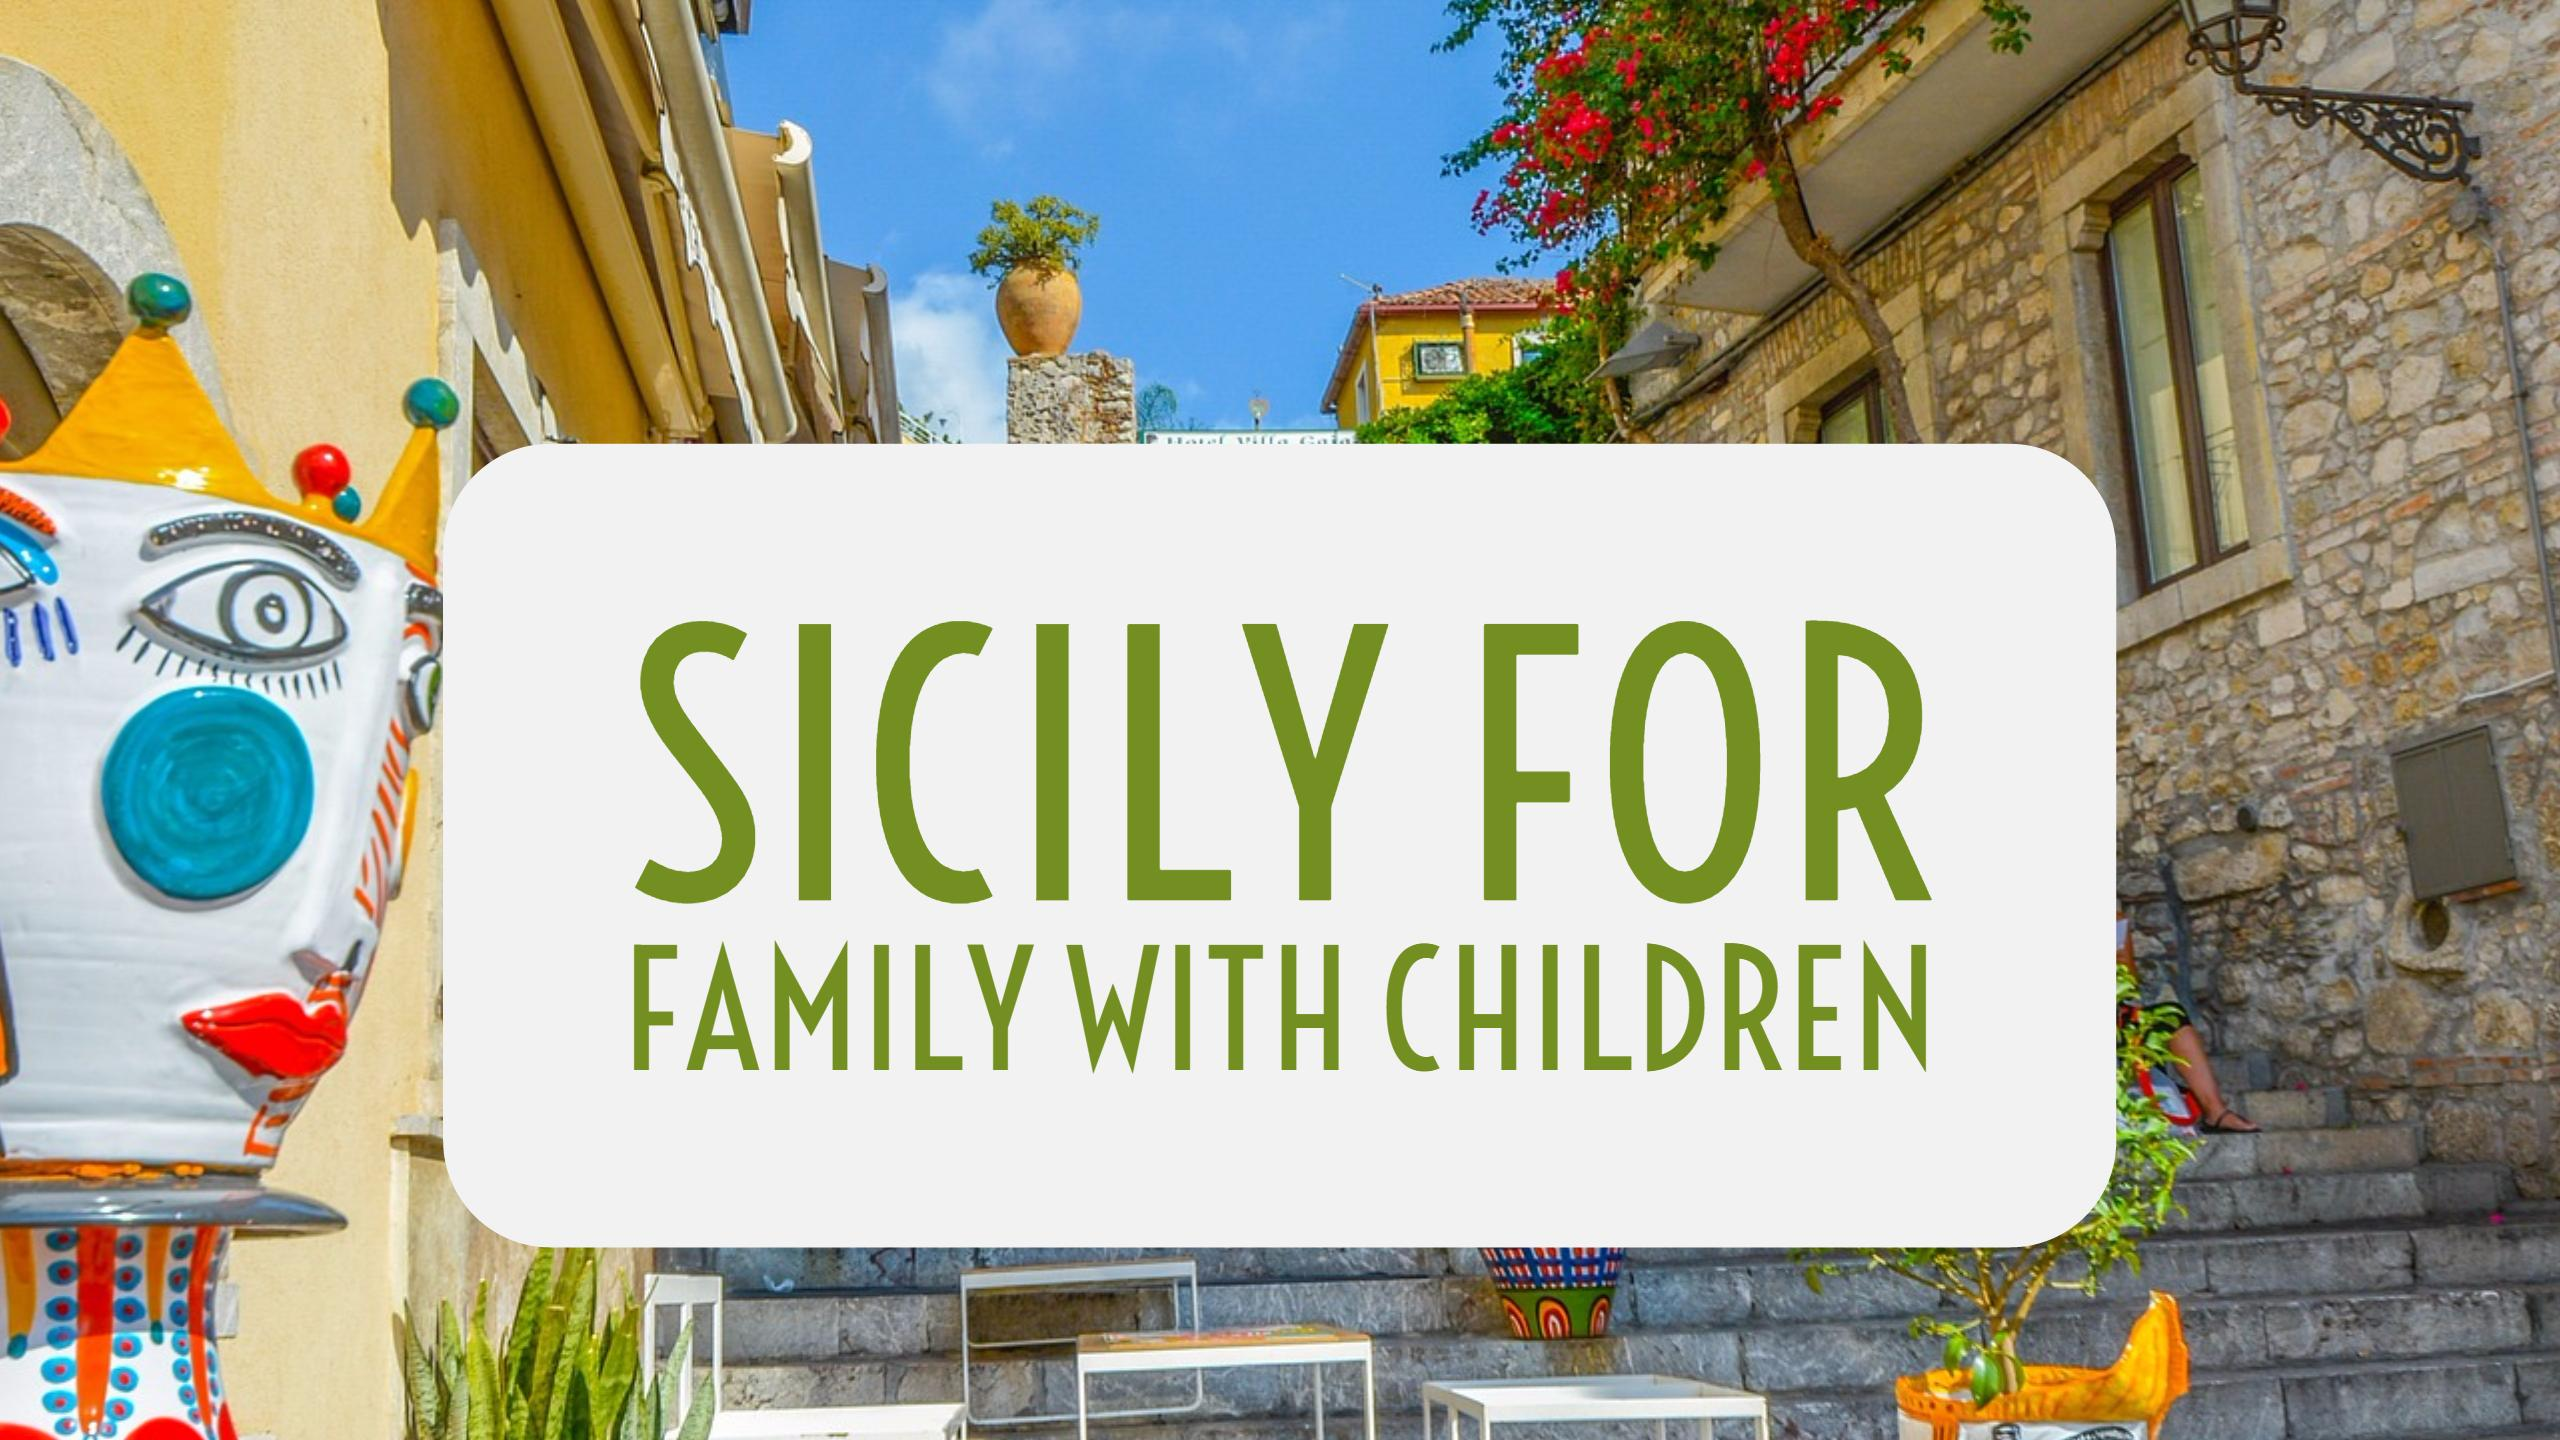 Sicily for family with children